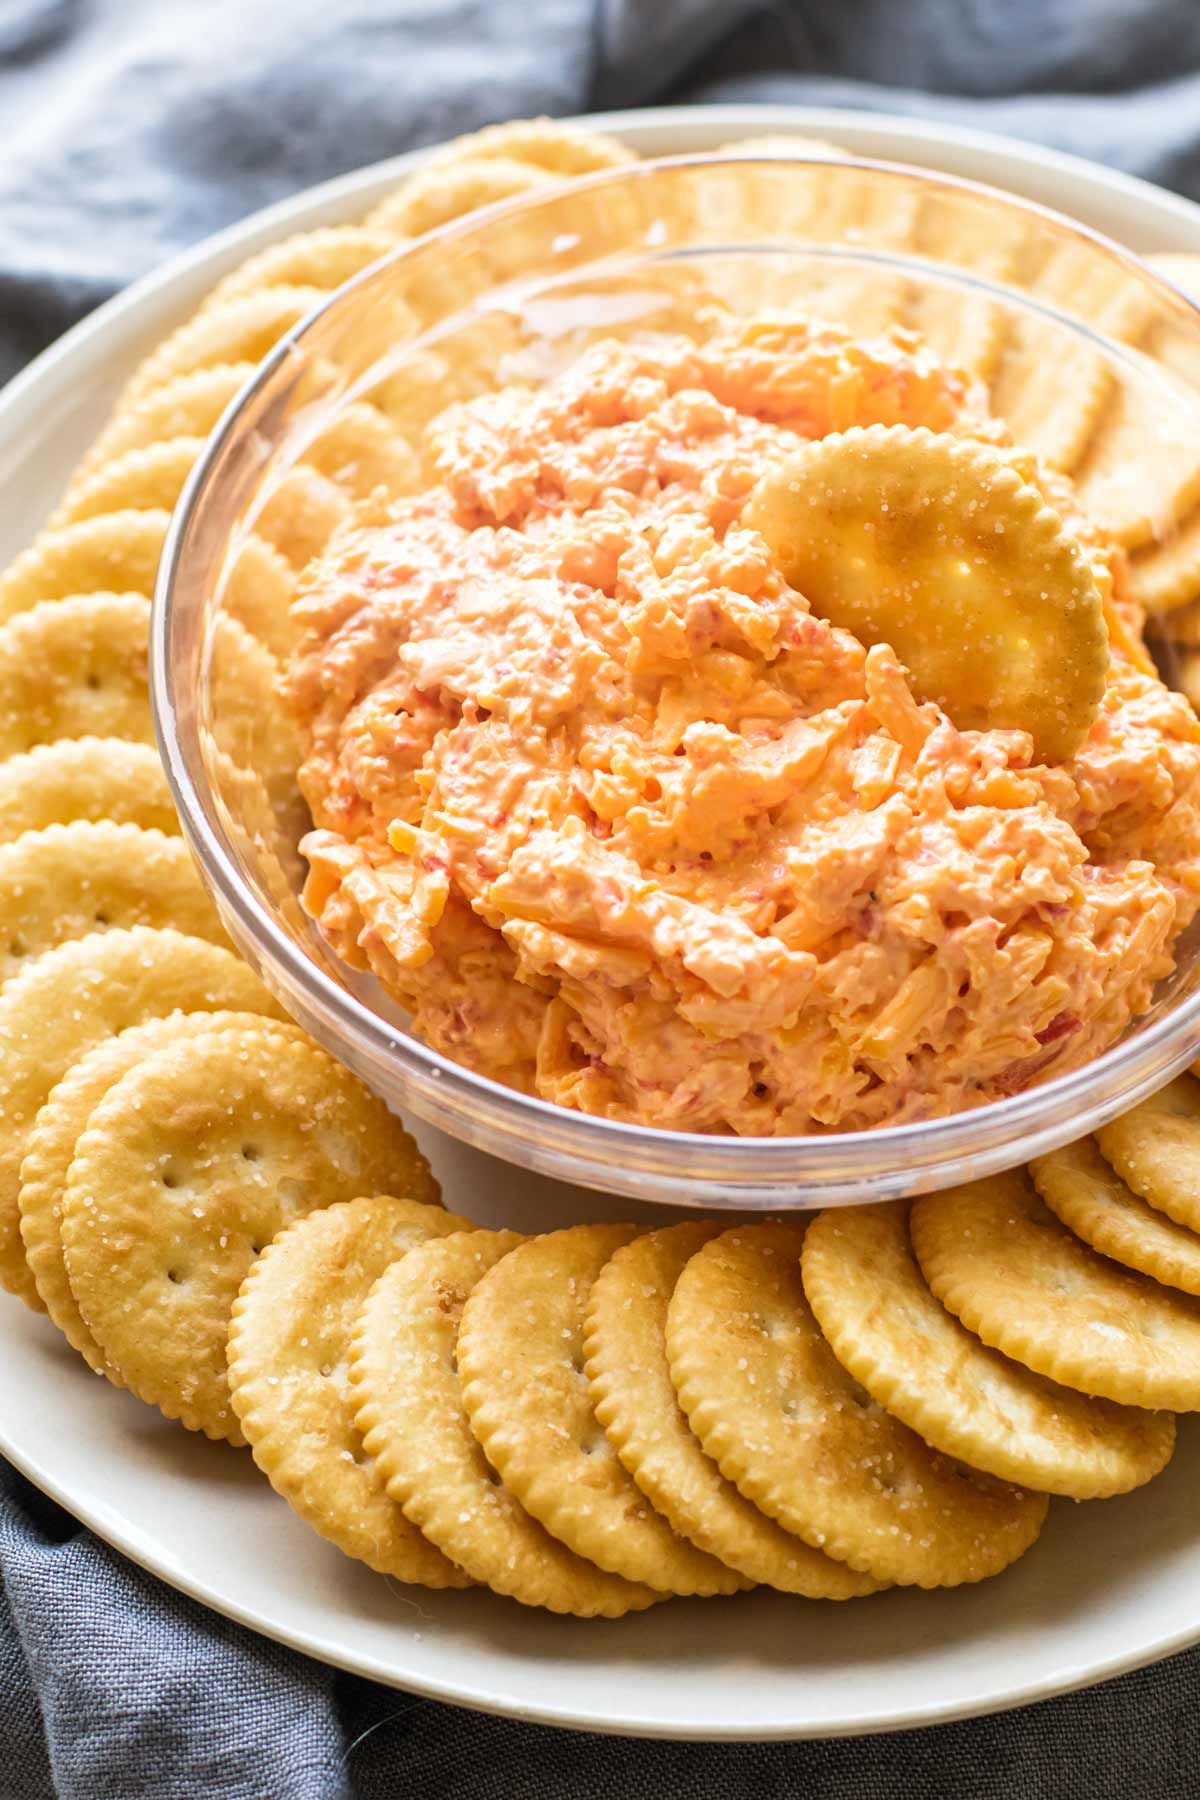 a bowl of pimento cheese with ritz crackers.